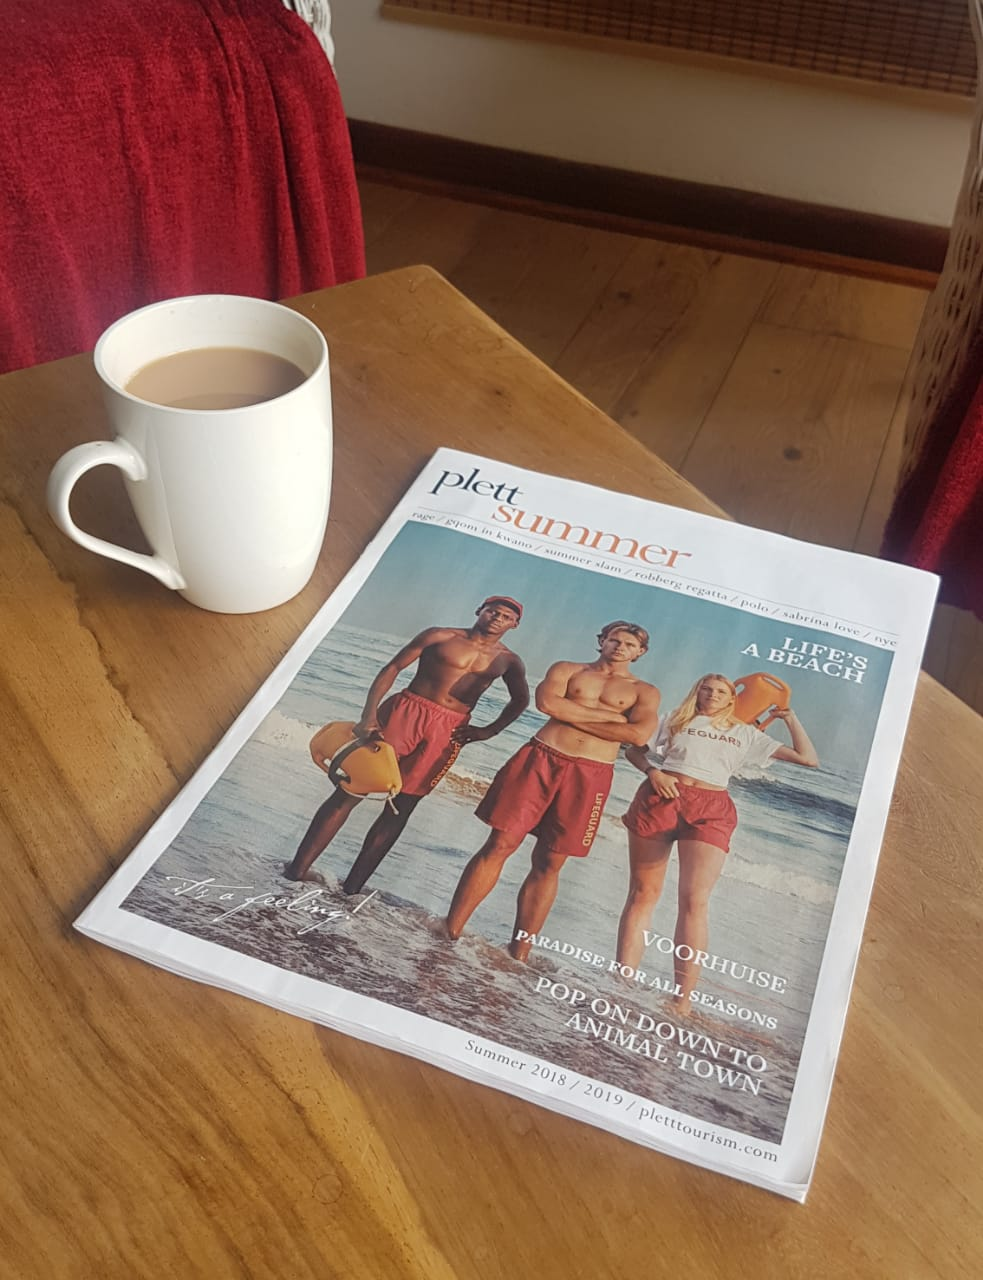 plett summer 2018 mag on coffee table